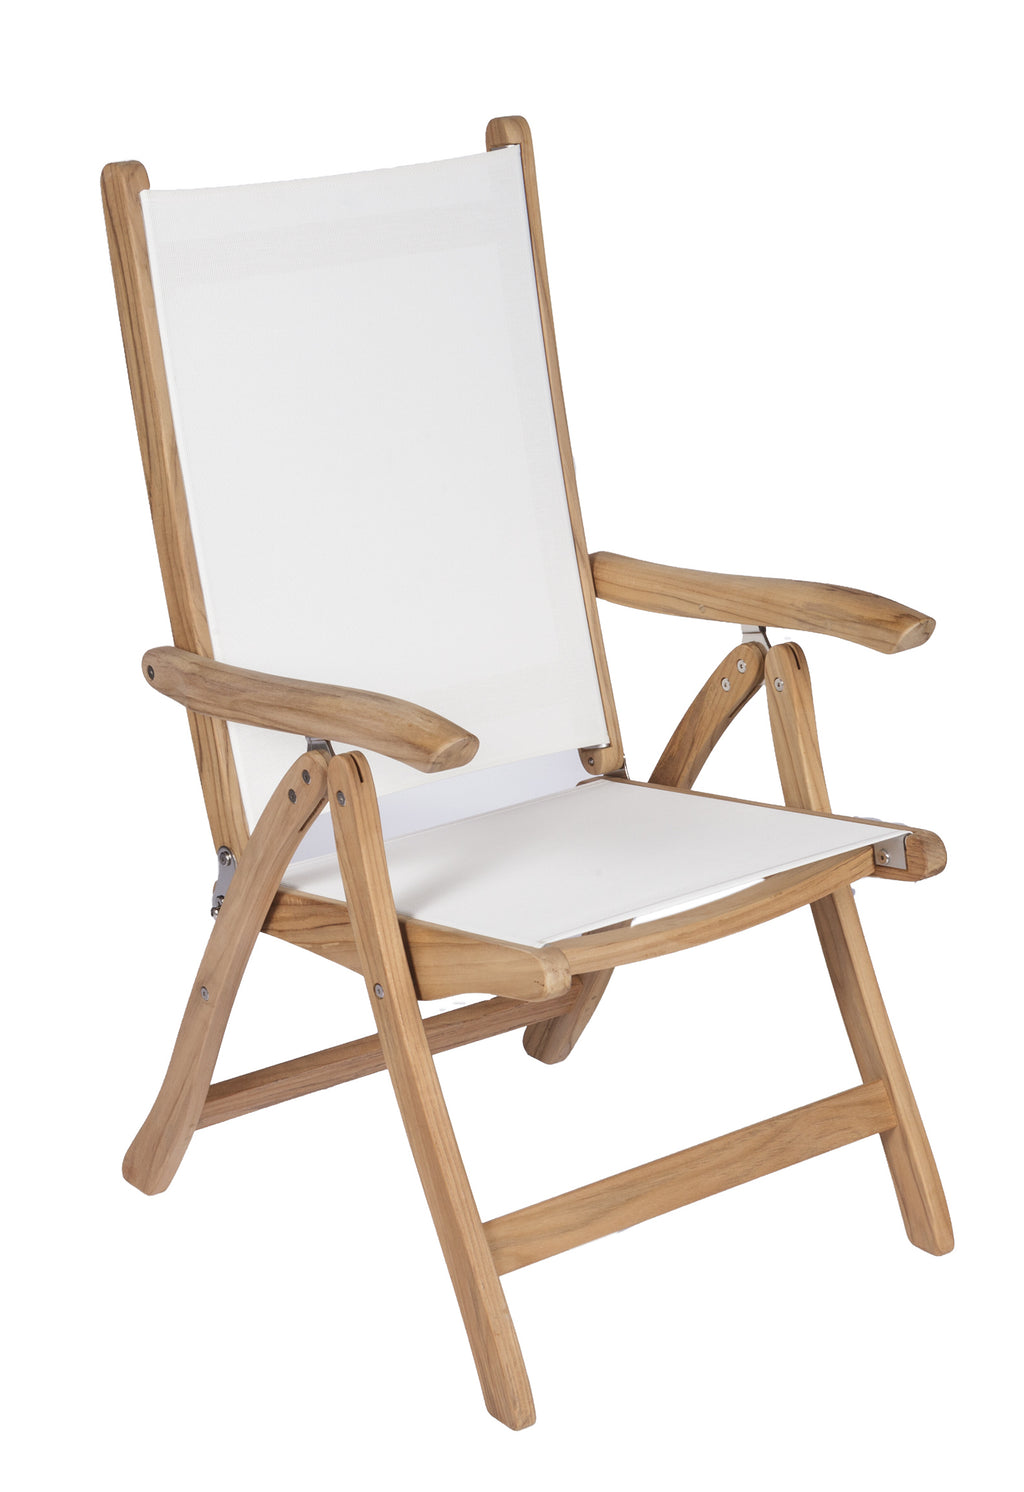 Florida Sling (Reclining) Dining Chair 5 Colors